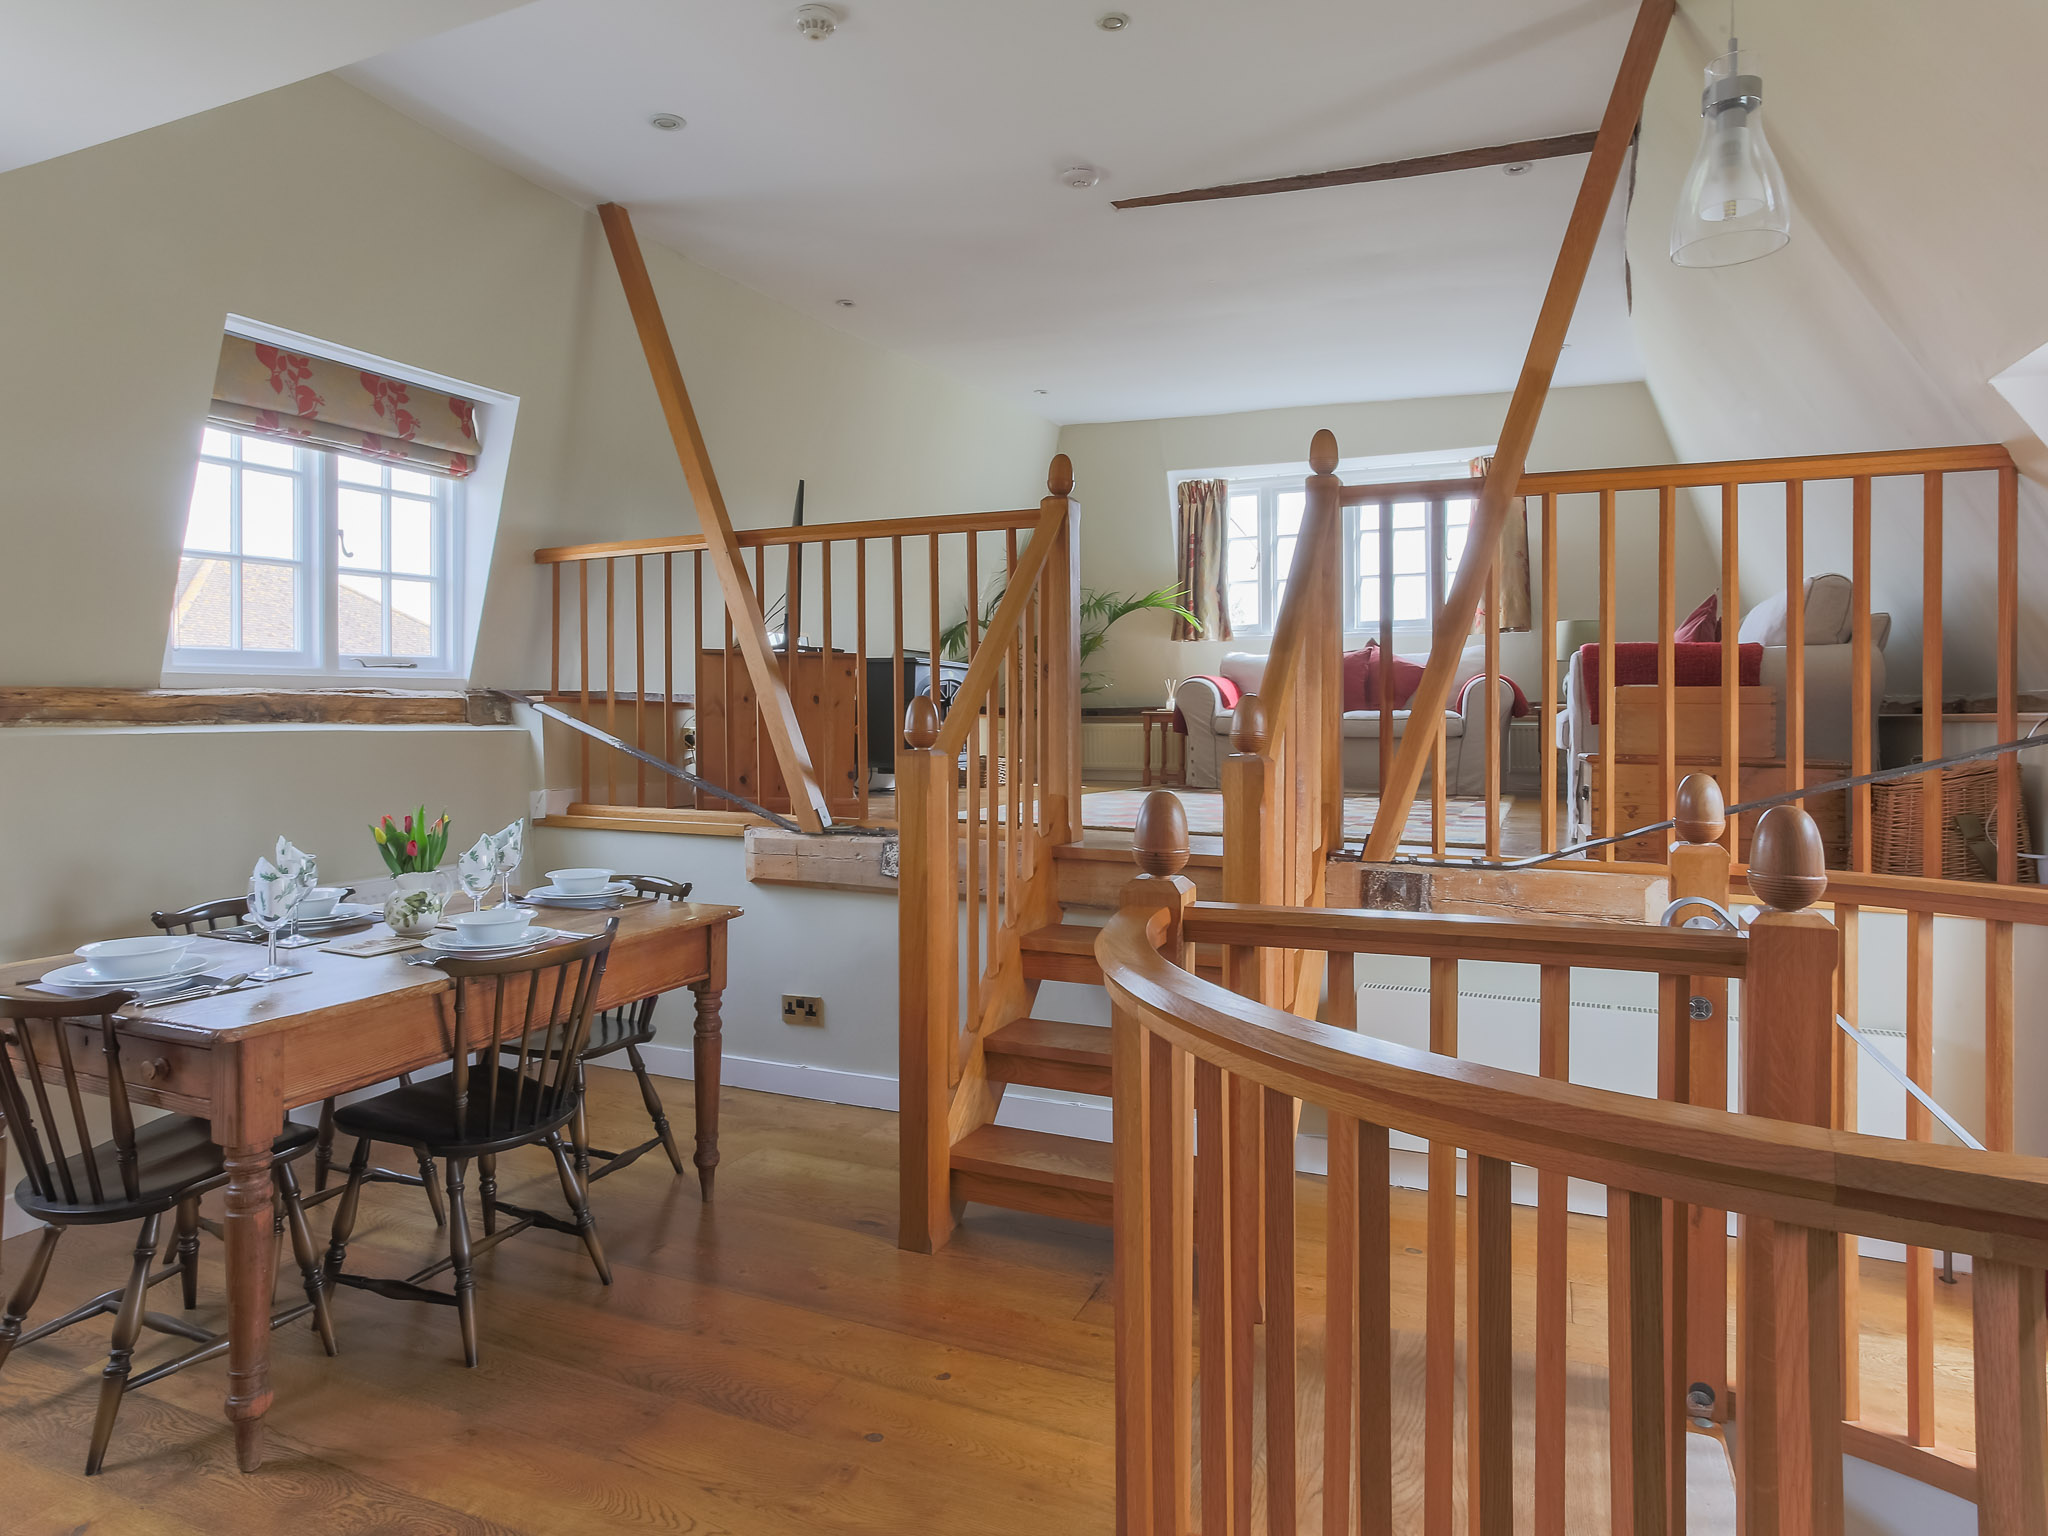 The oast has been thoughtfully converted with traditional materials